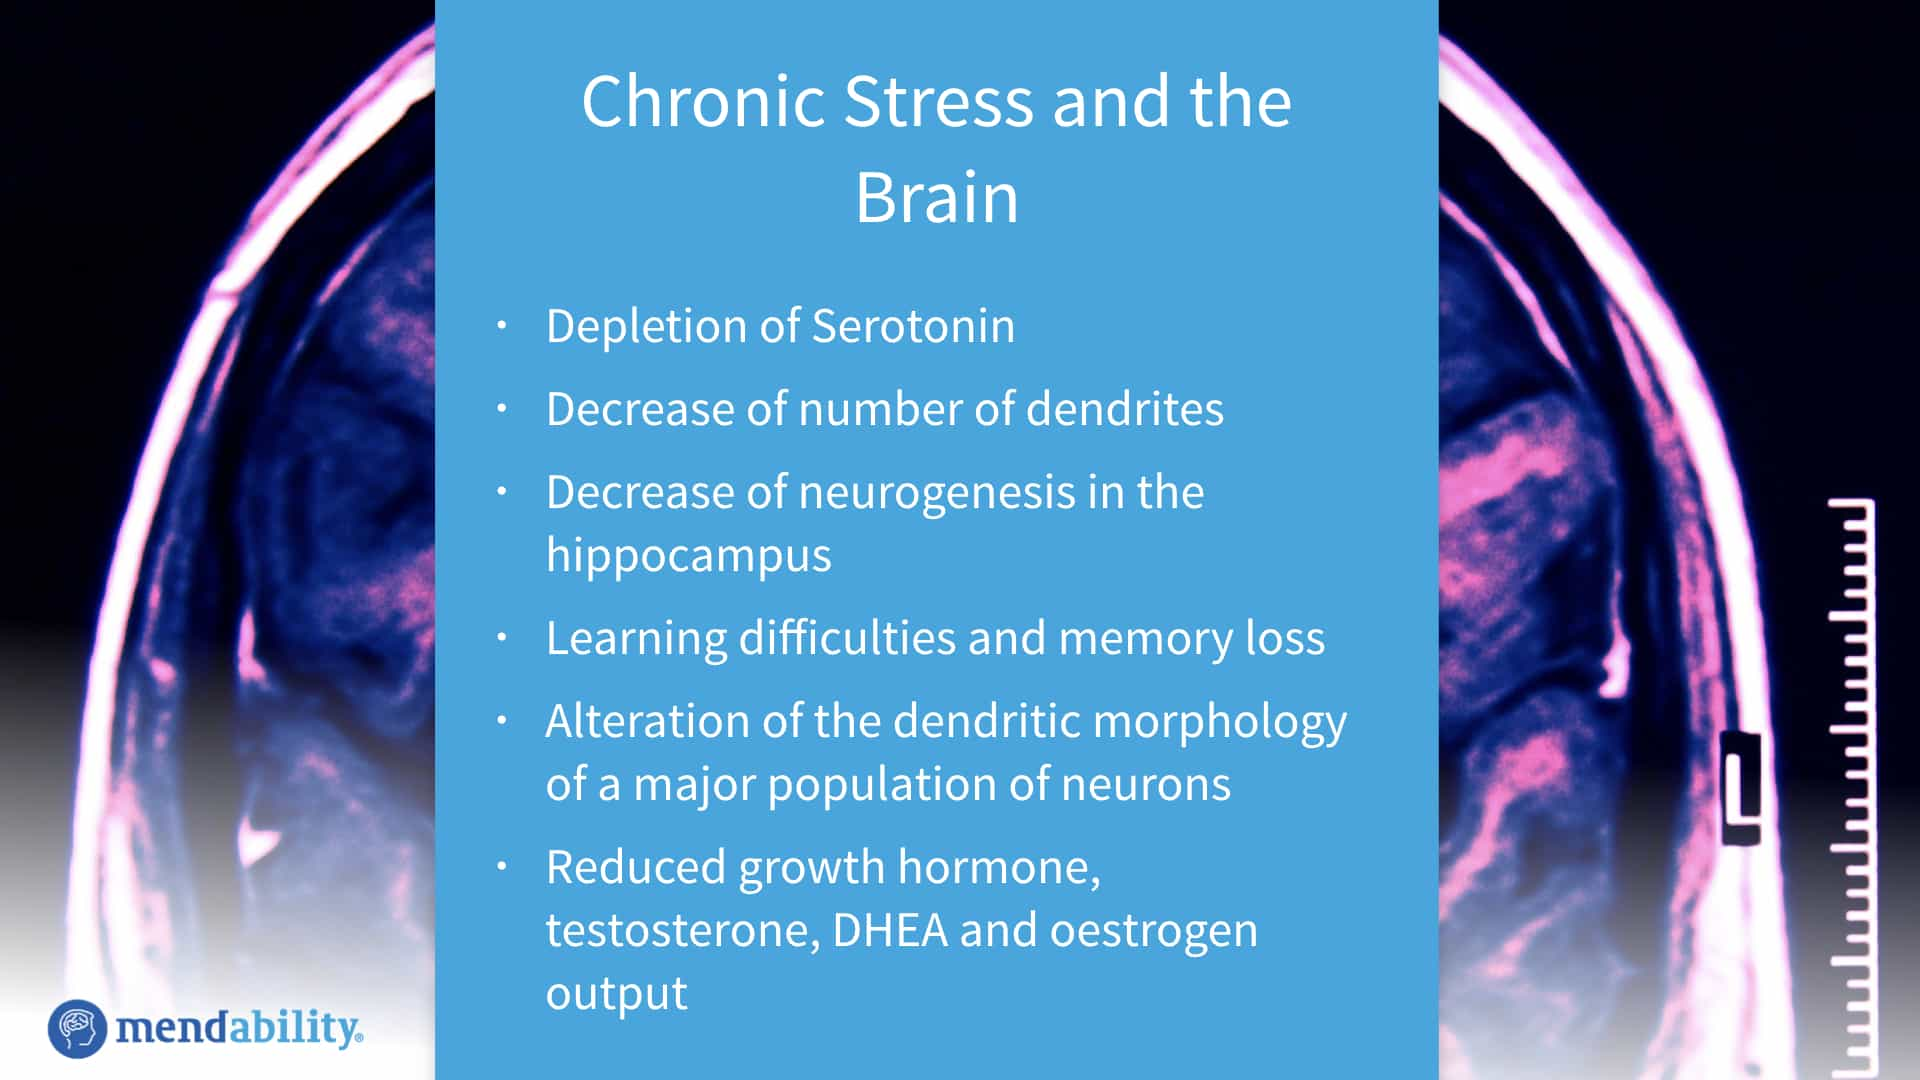 Neurological effects of chronic stress and cortisol